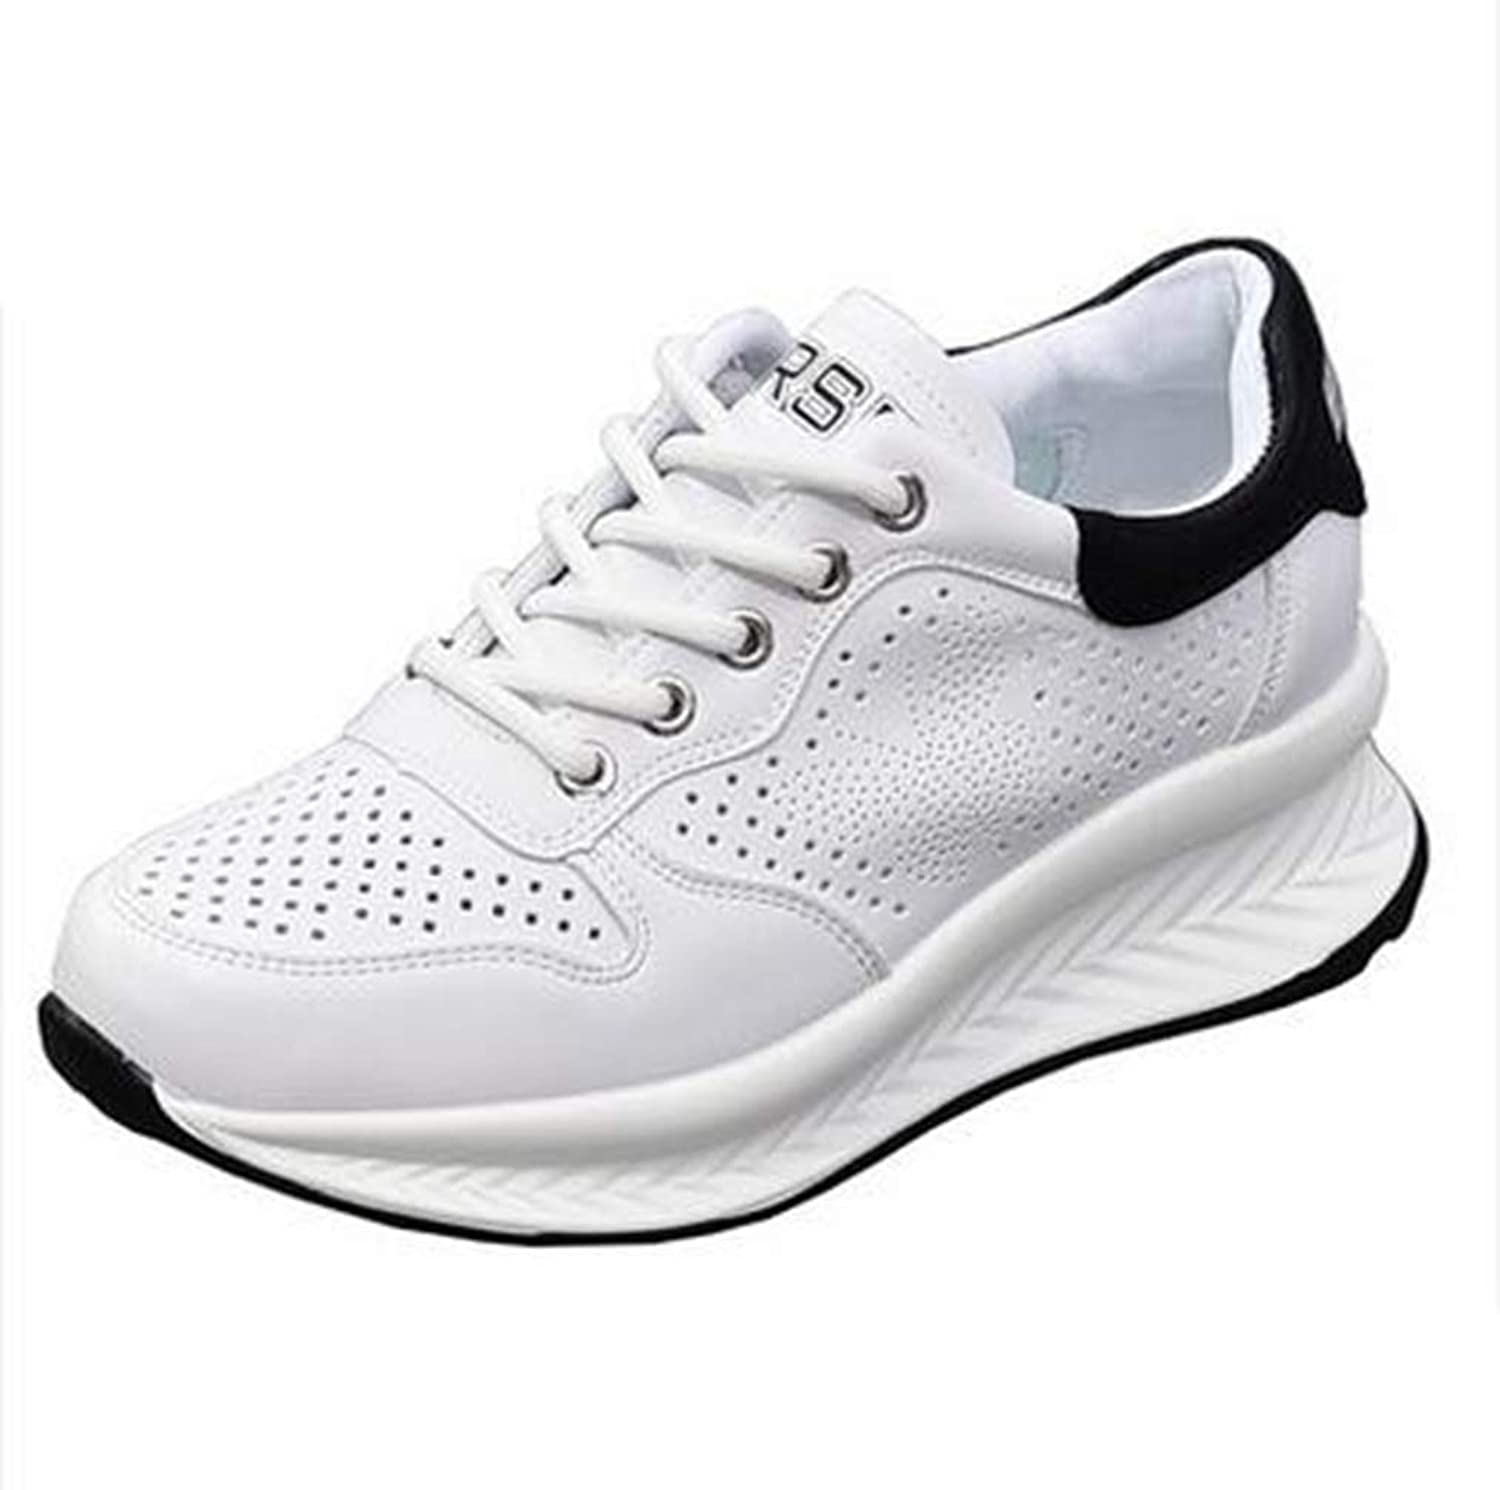 T-JULY Spring Summer Wedges White shoes Female Platform Sneakers Women Tenis Feminino Casual Female shoes